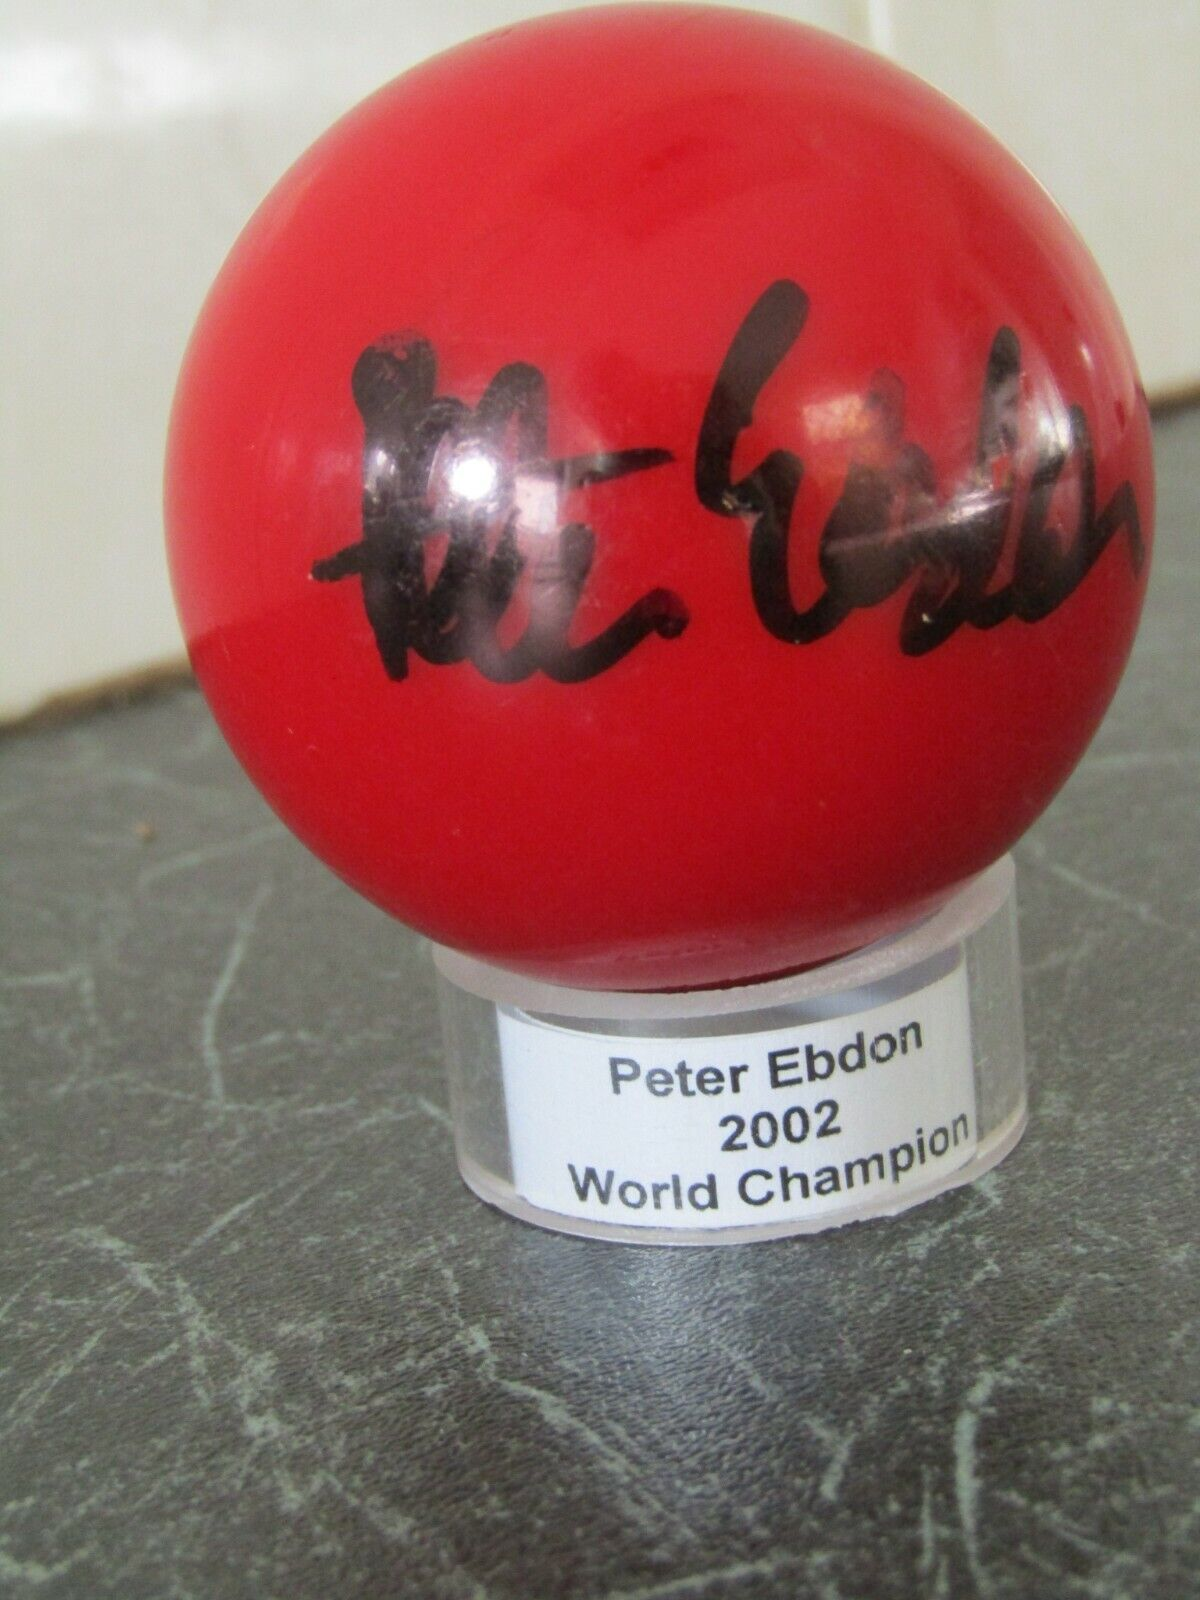 SNOOKER BALL Autographed by PETER EBDON (World Champion 2002), circa.2005/6